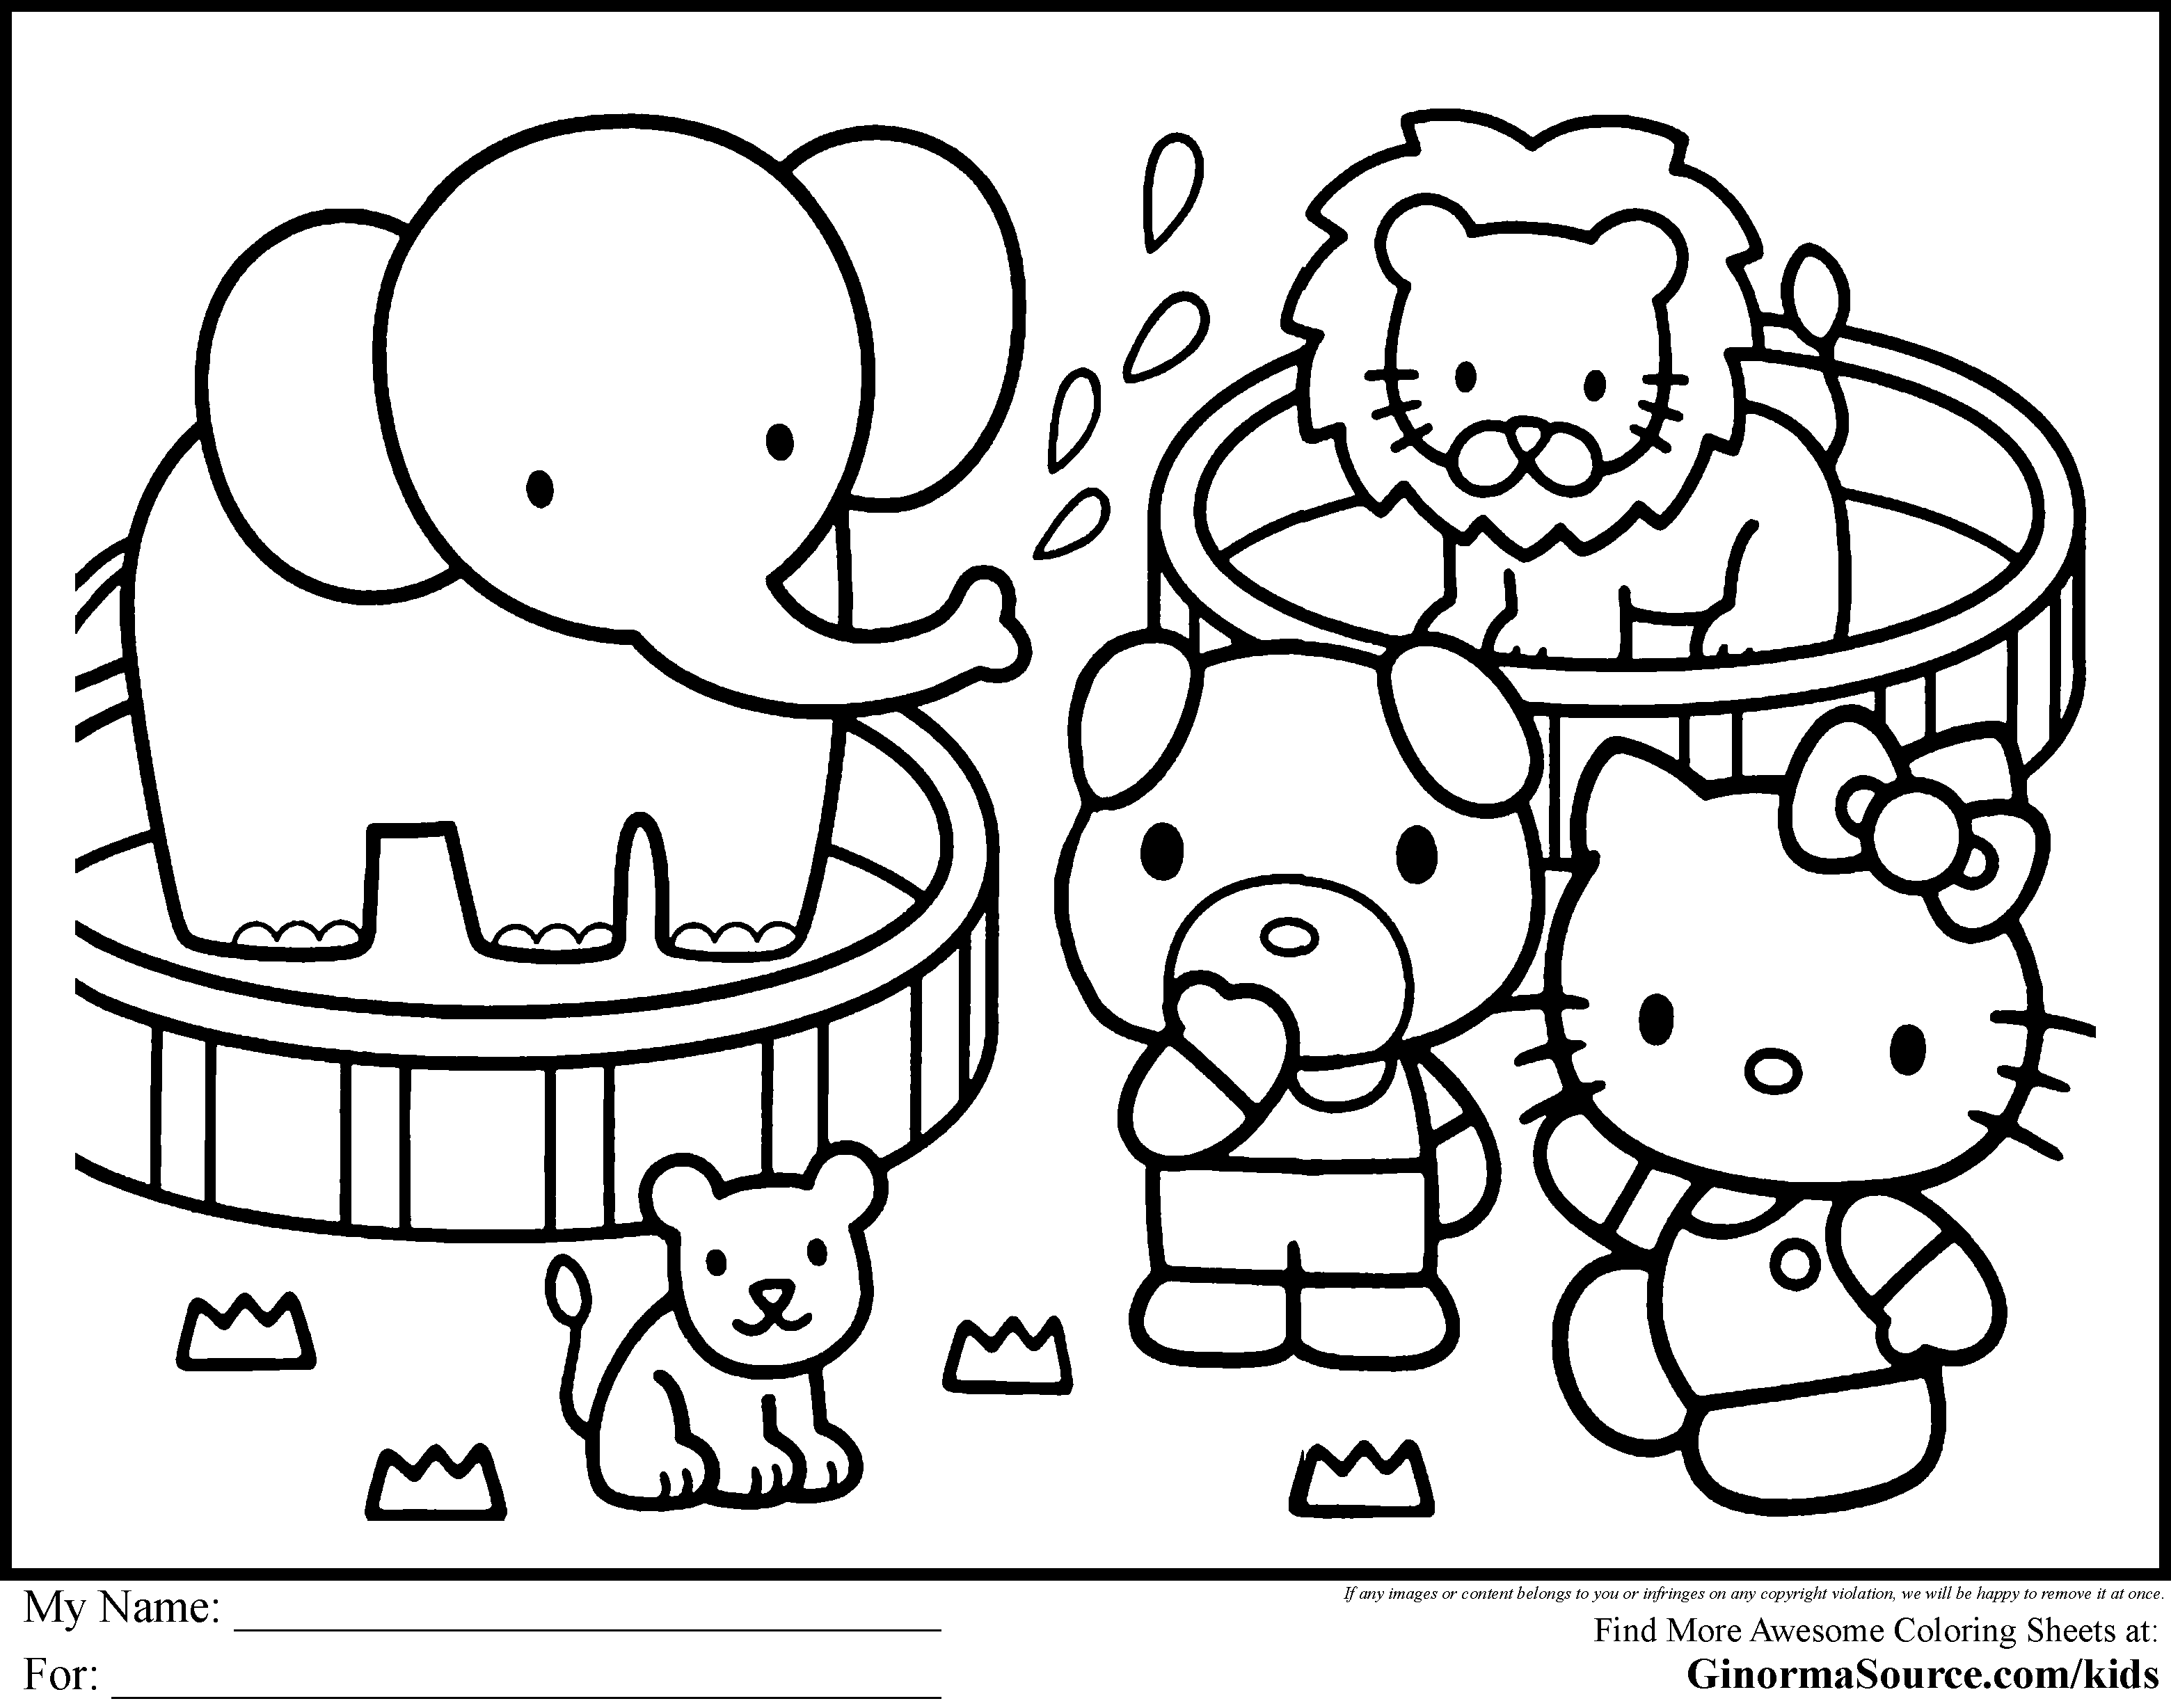 3120x2455 hello kitty coloring pages printable for kids free